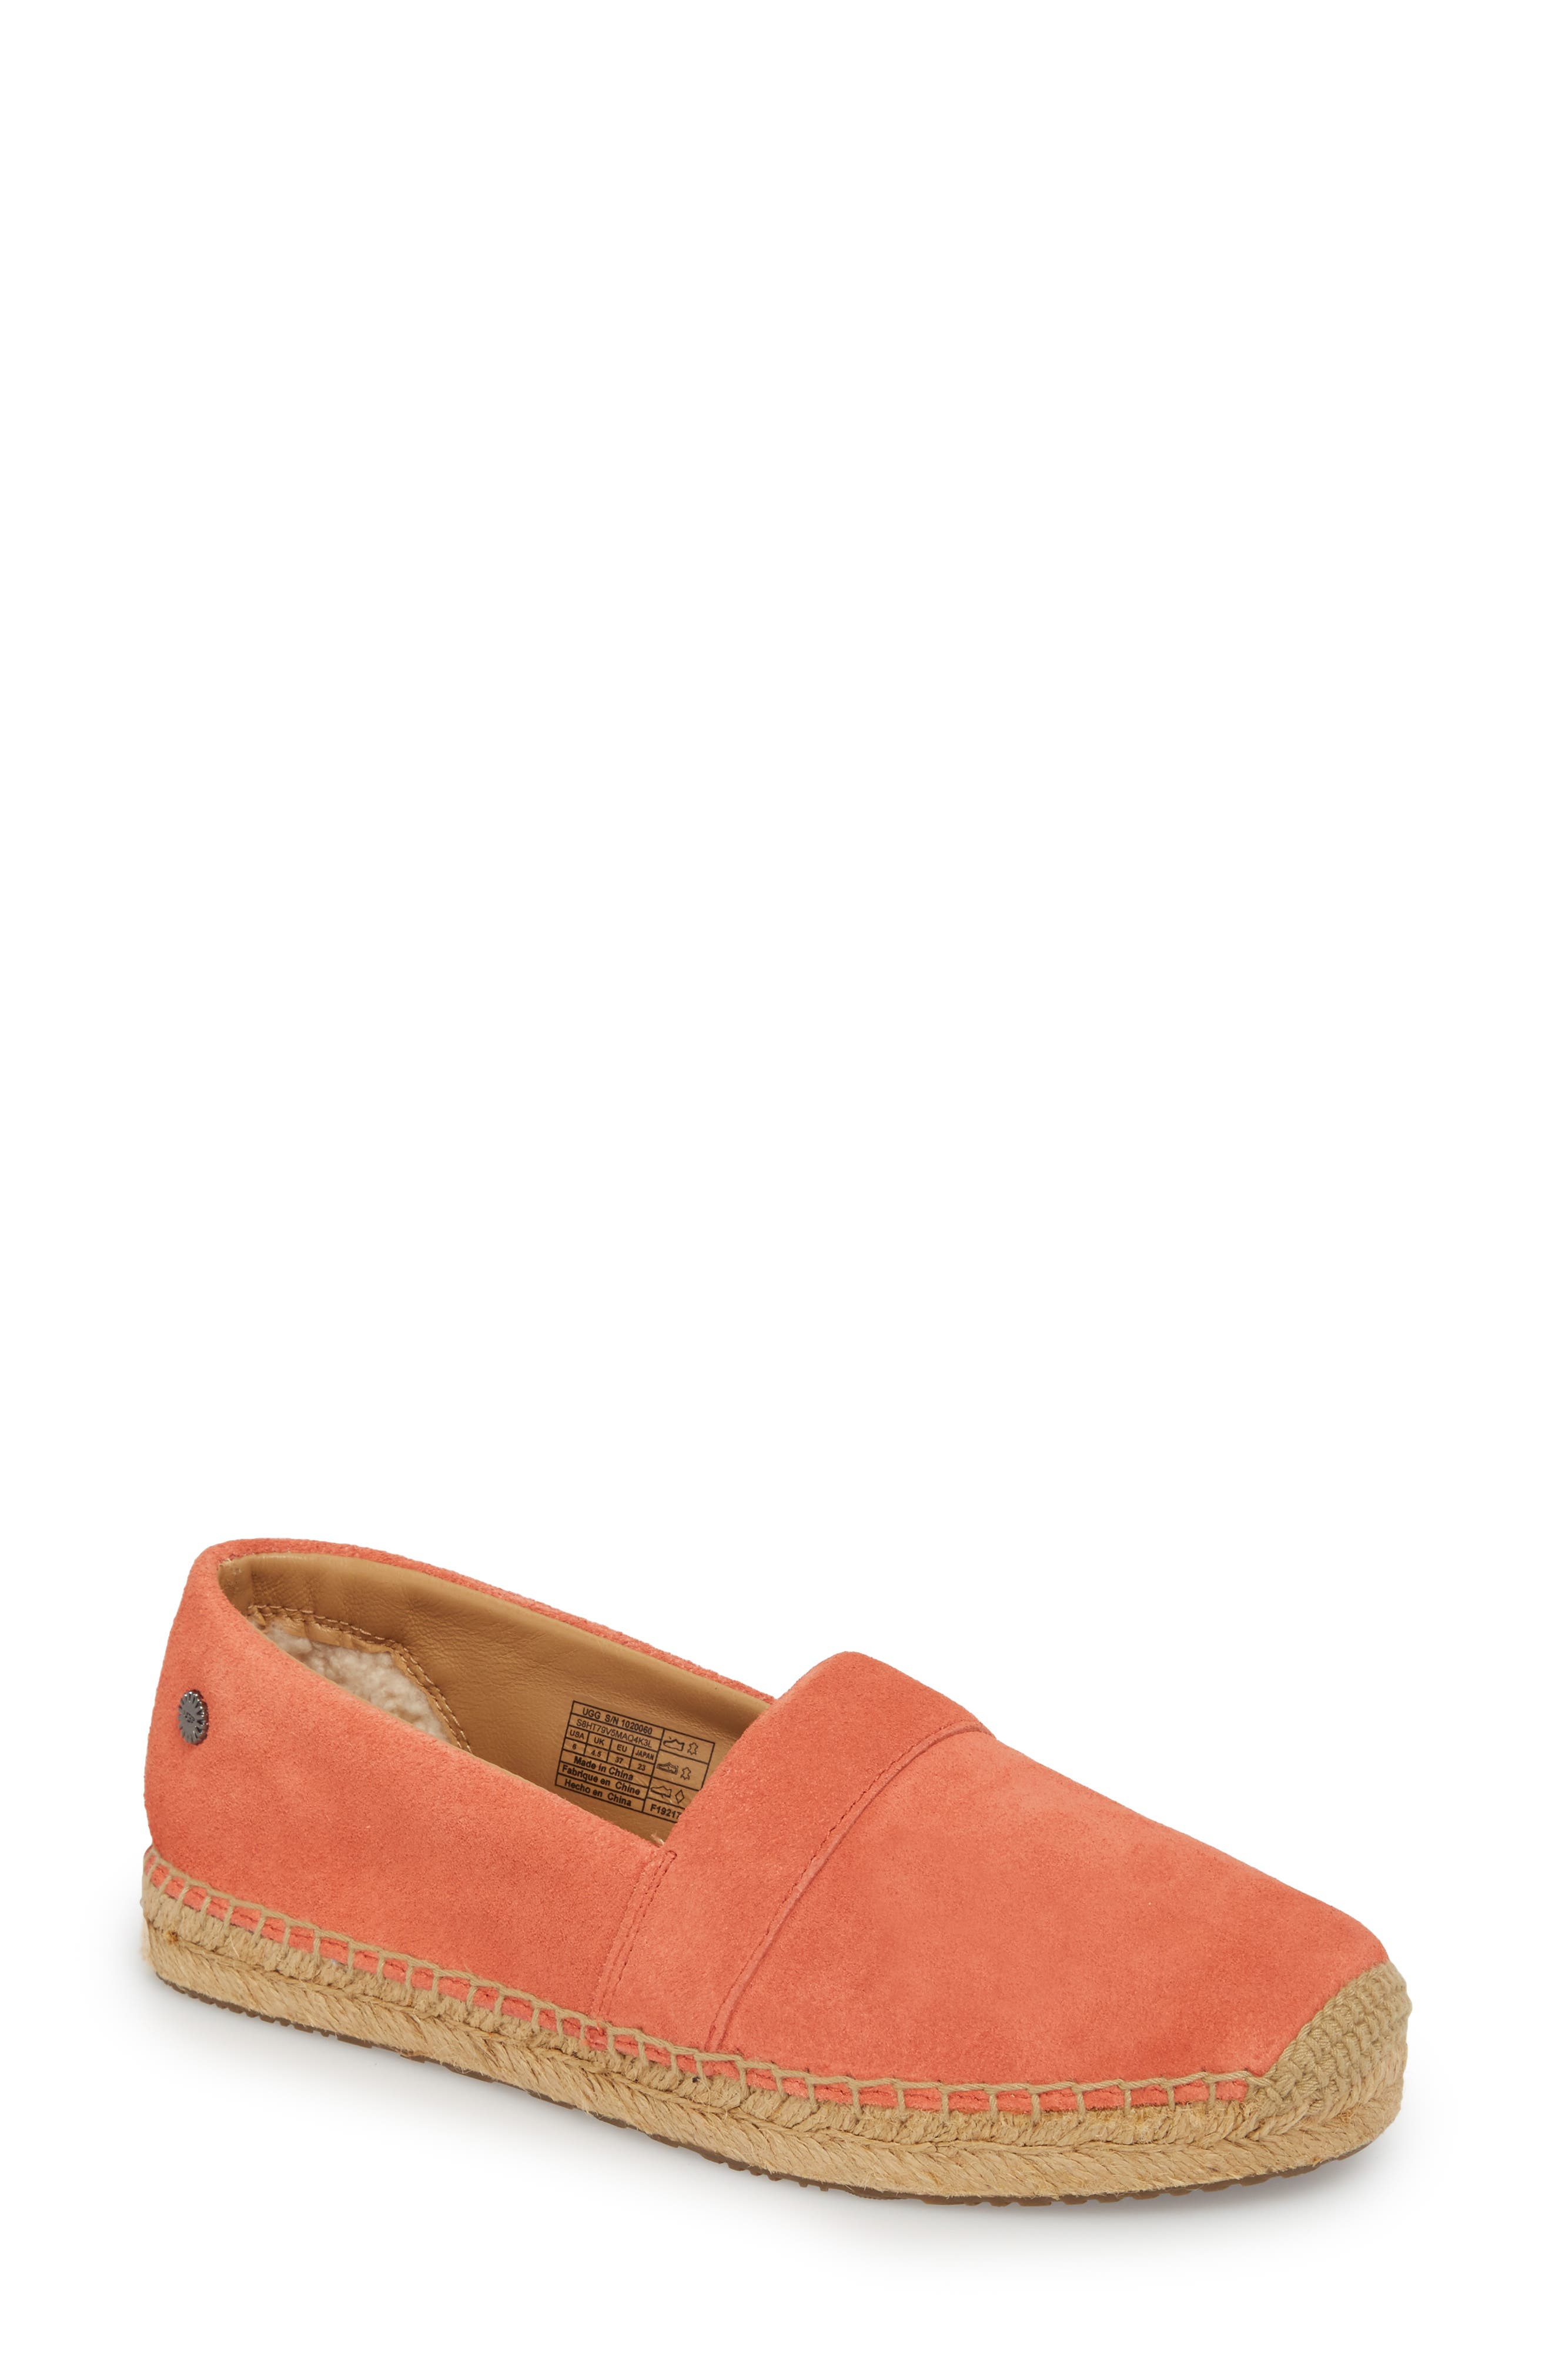 Reneda Espadrille Slip-On,                         Main,                         color, Fusion Coral Suede